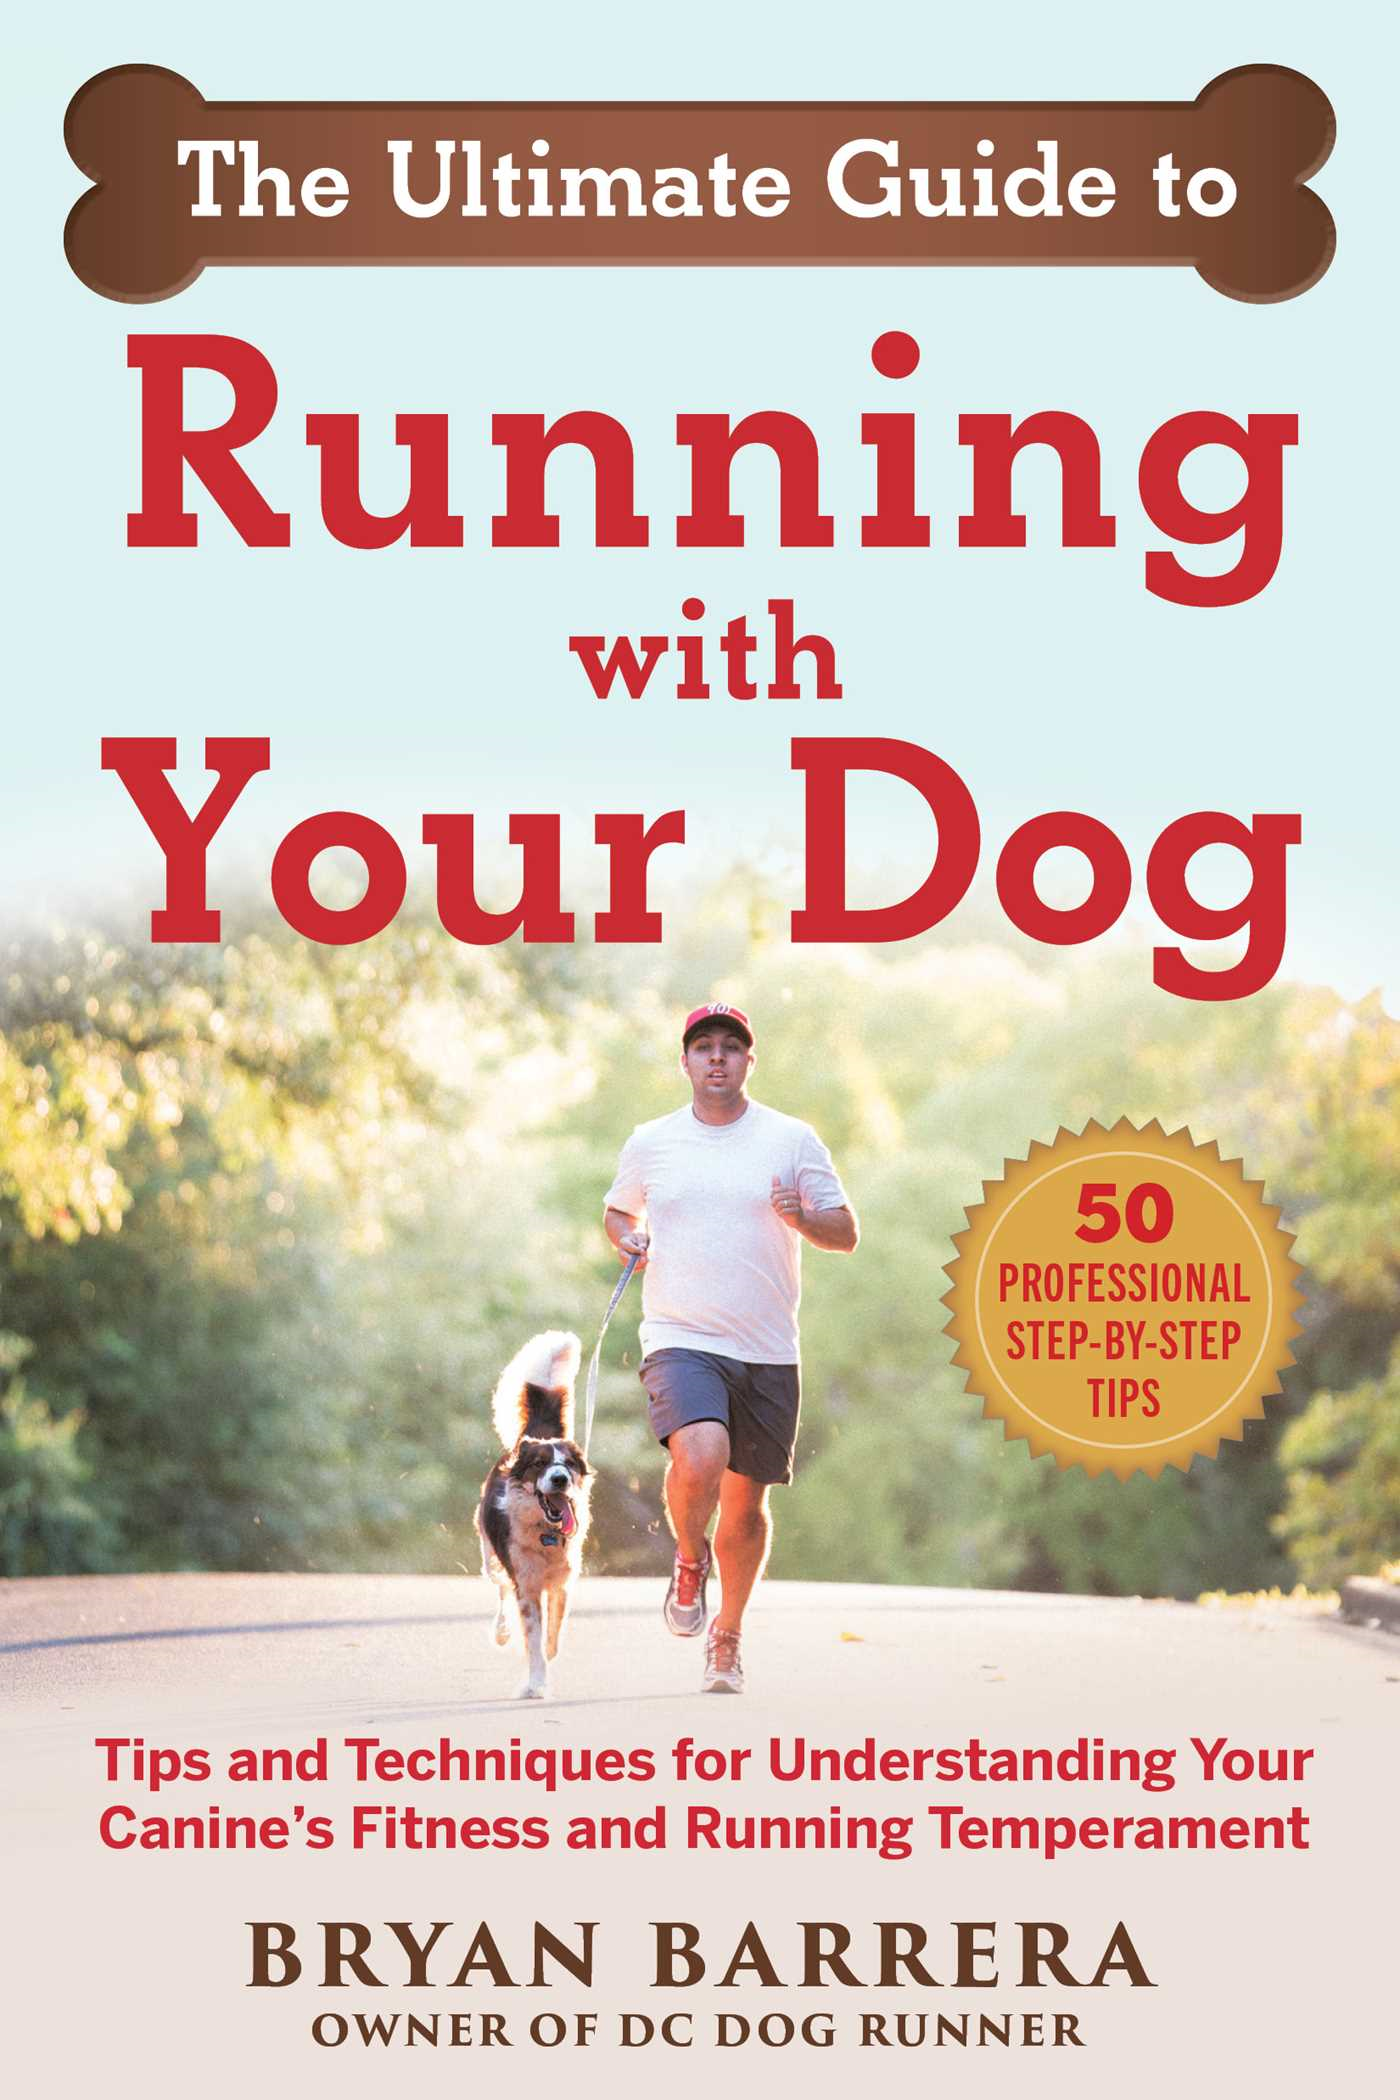 The Ultimate Guide to Running with Your Dog